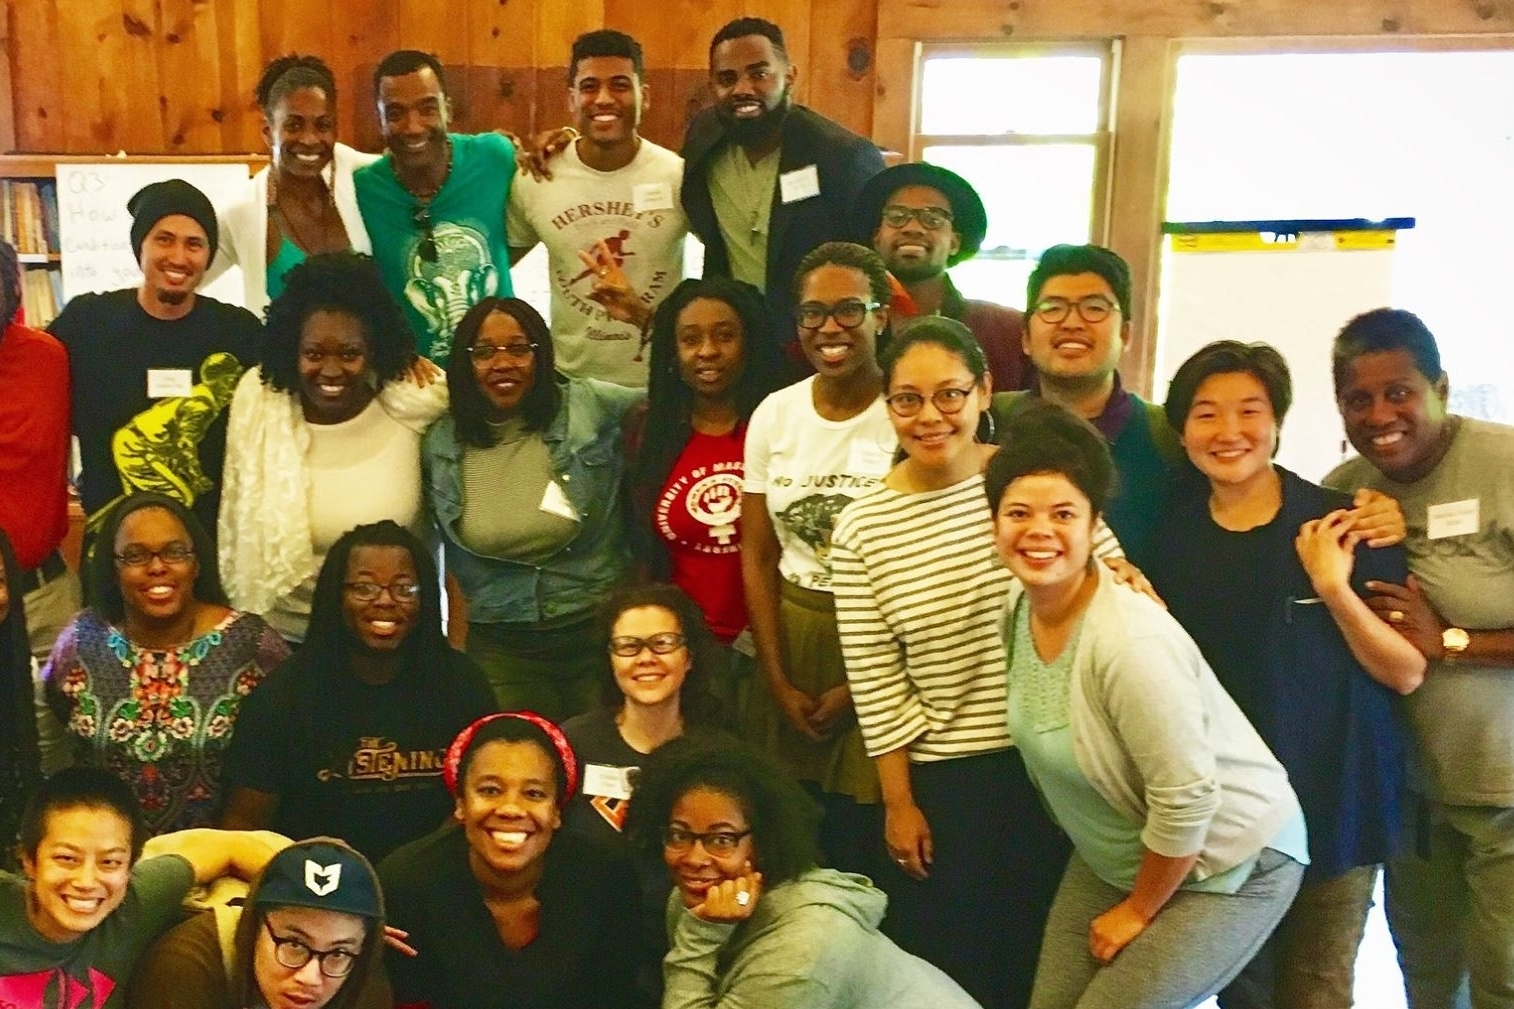 Participants of color at the 2017 Formation Gathering sponsored by the how we gather team .